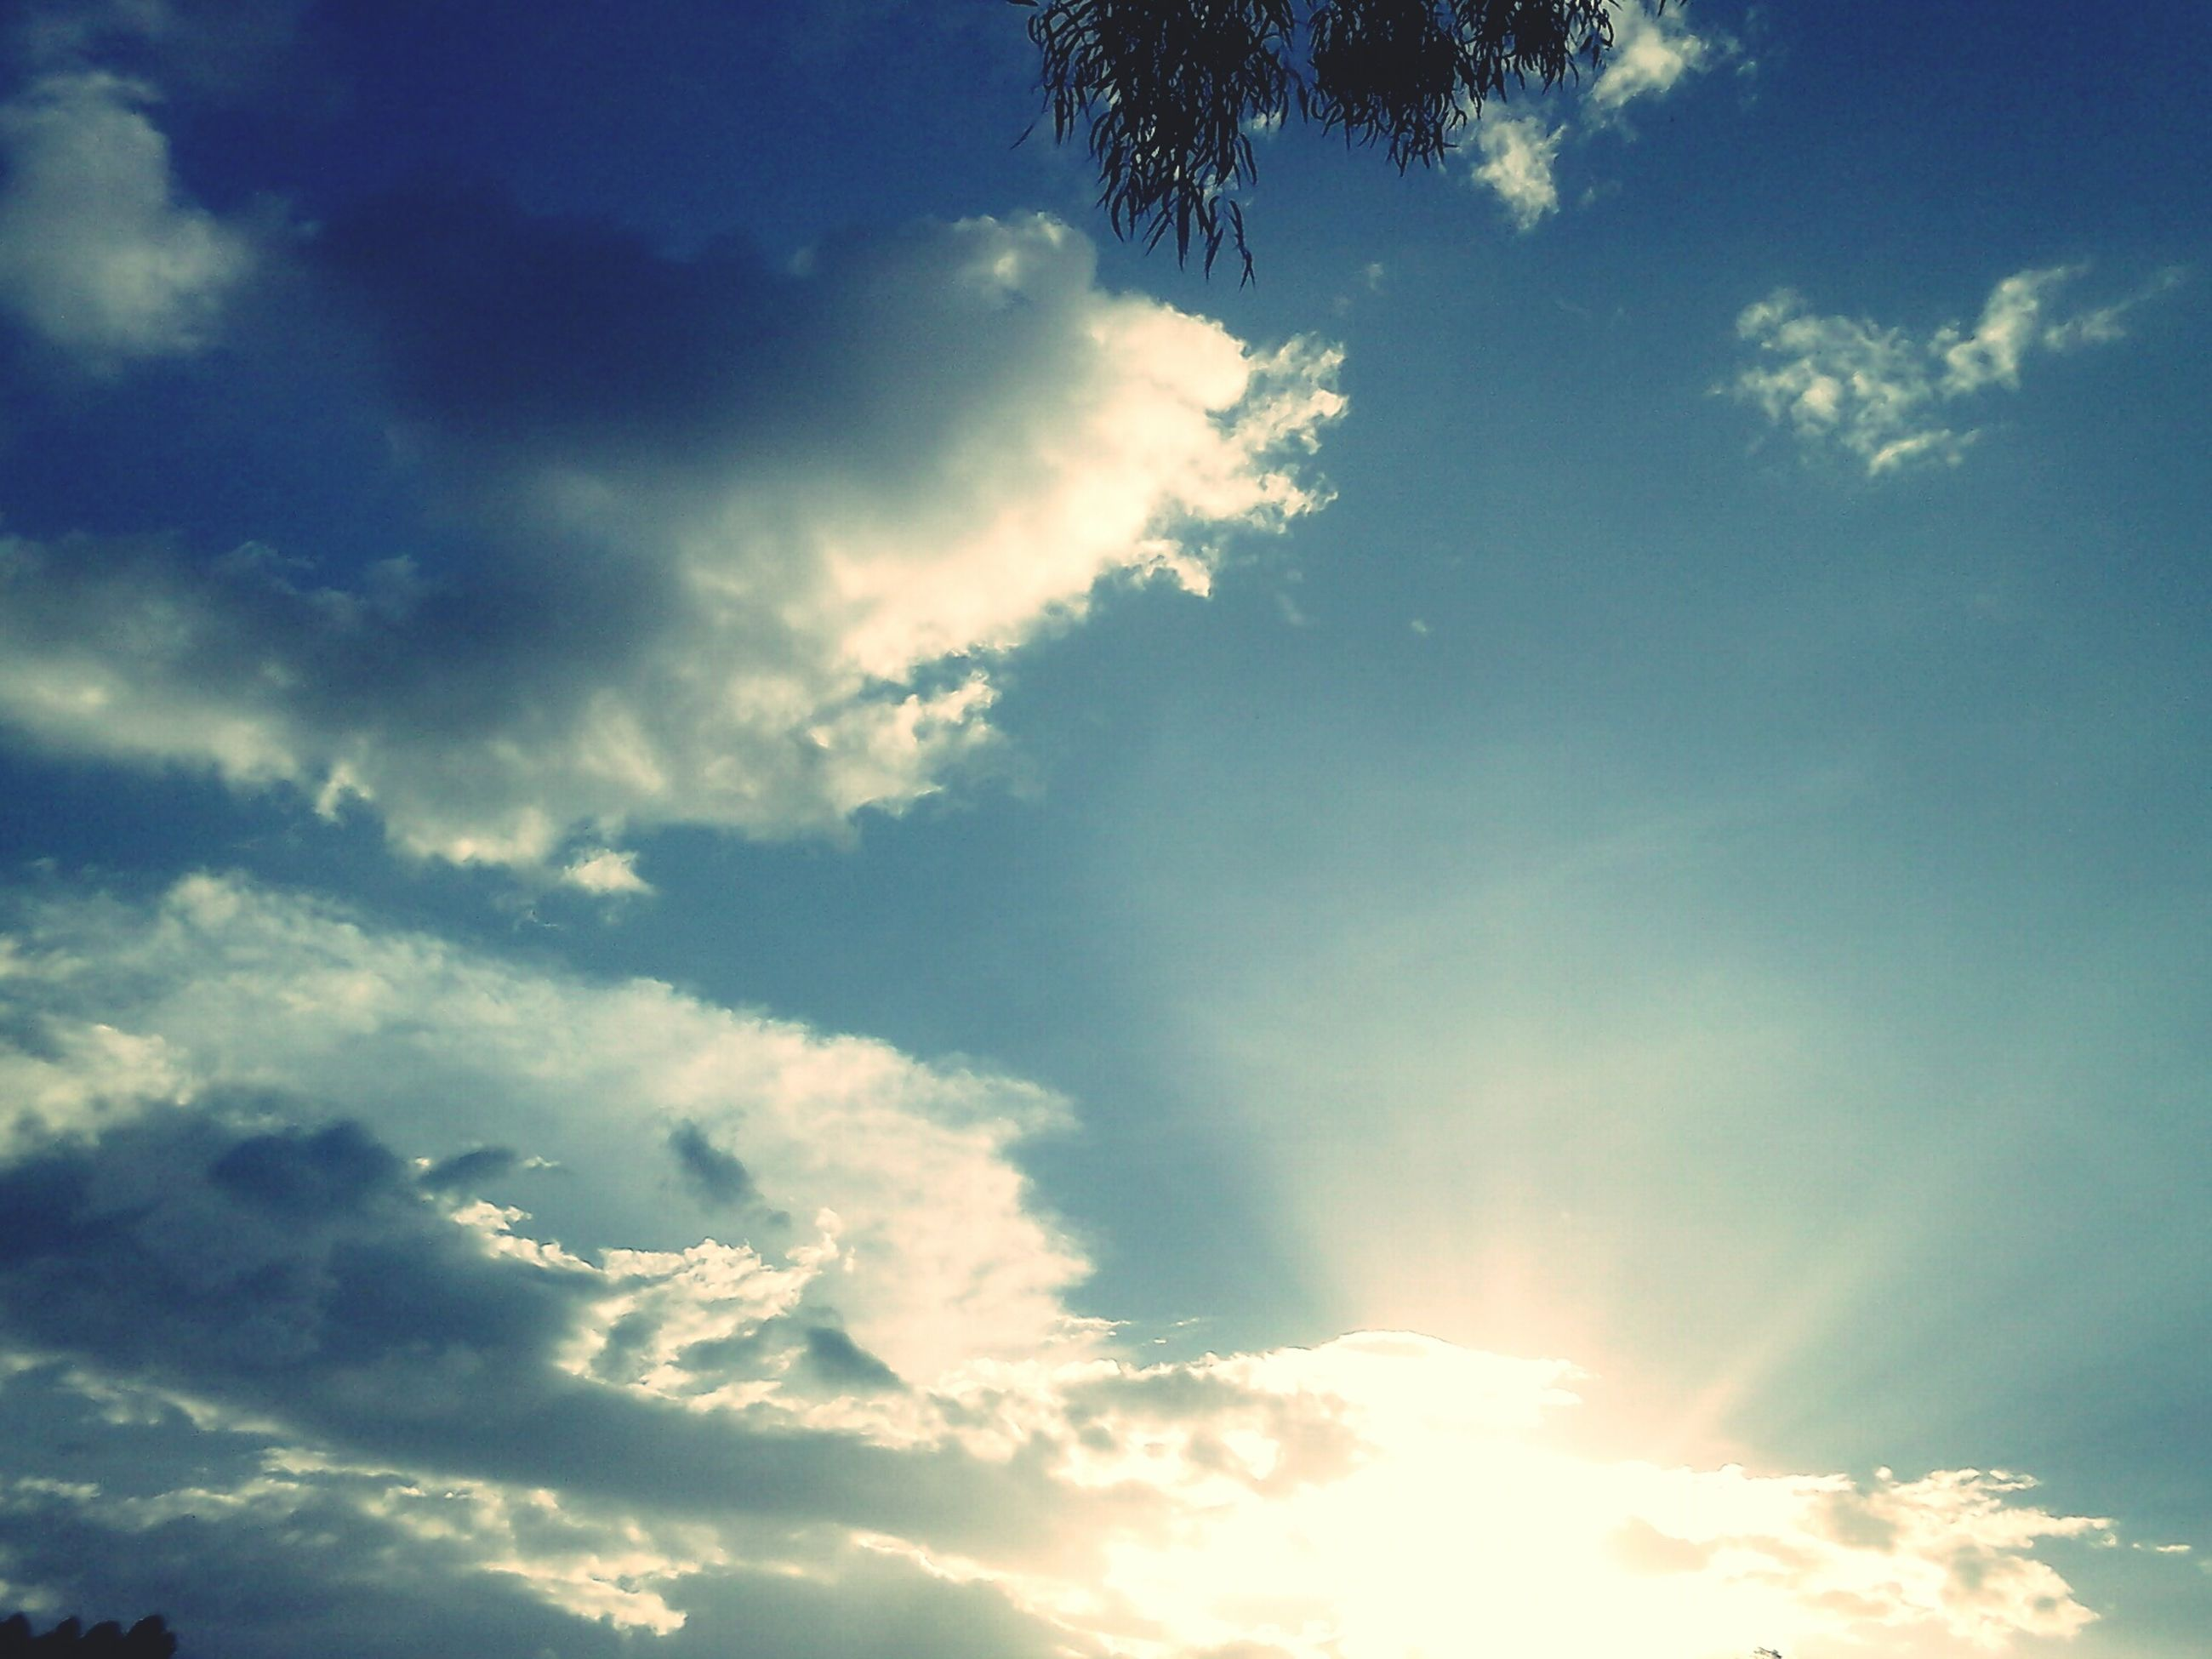 low angle view, sky, cloud - sky, beauty in nature, tranquility, scenics, blue, nature, tranquil scene, sunbeam, sunlight, sun, cloud, sky only, cloudy, idyllic, cloudscape, outdoors, no people, day